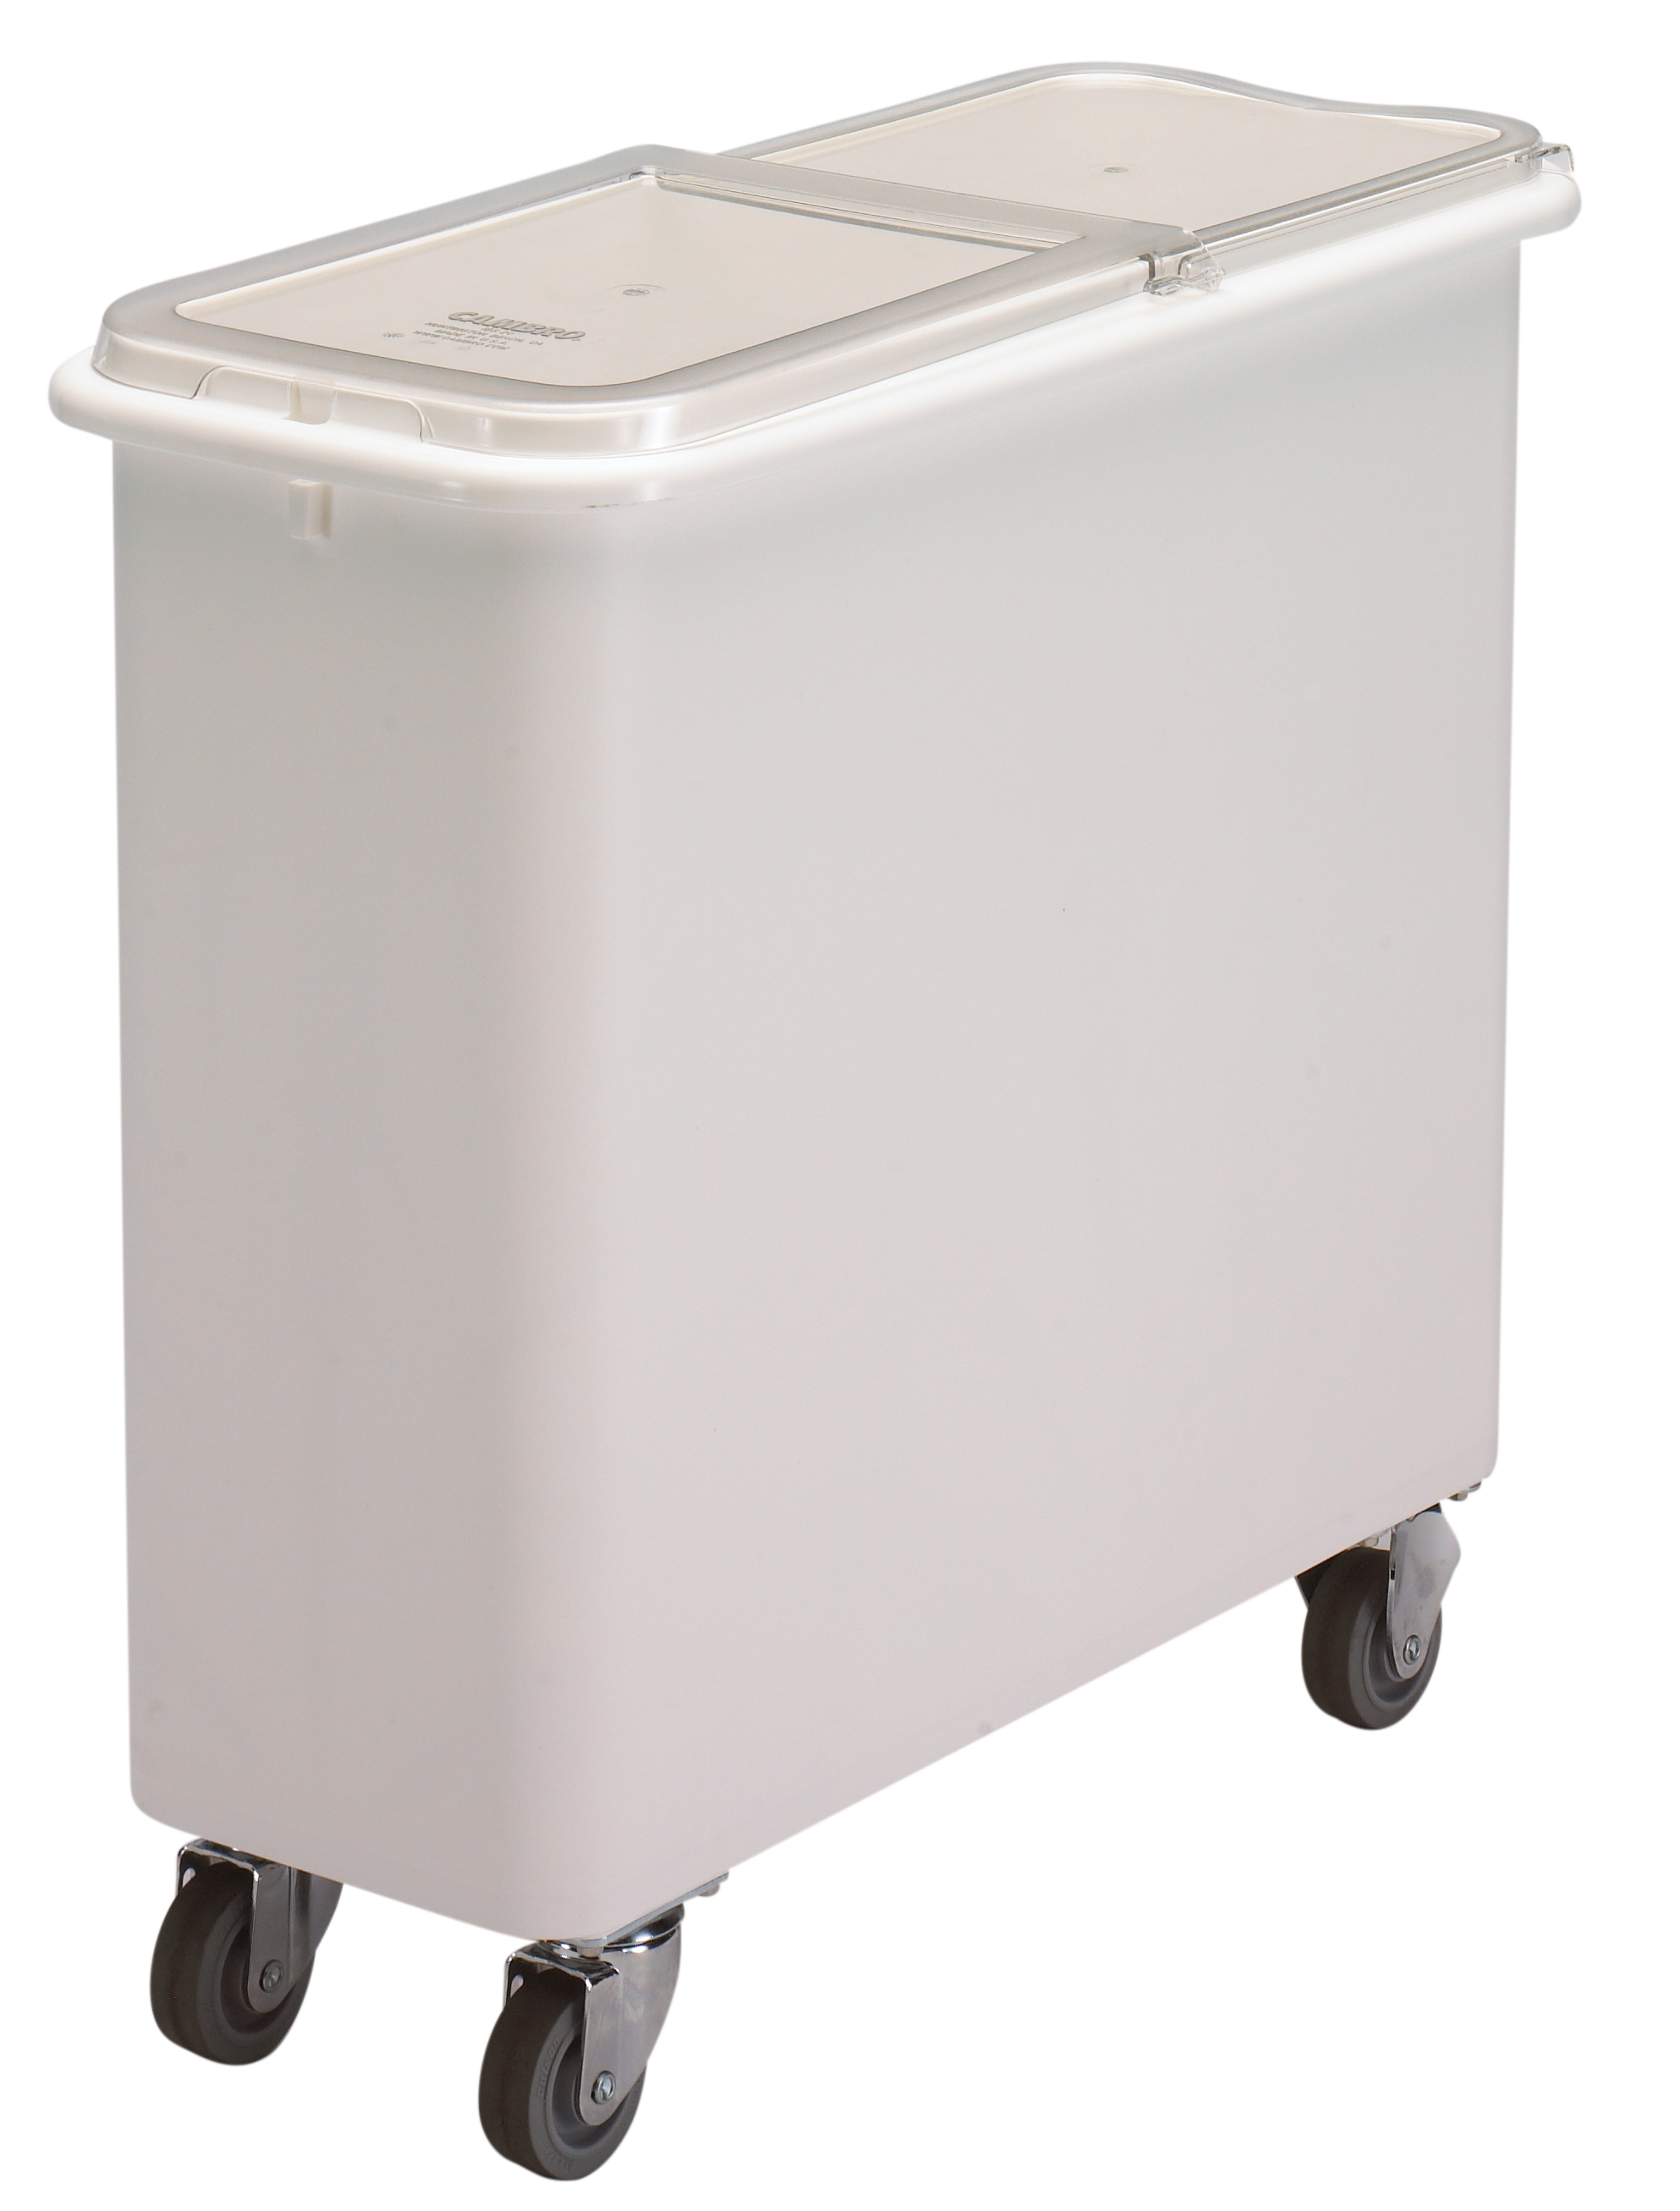 Cambro IBSF27148 food/beverage storage container